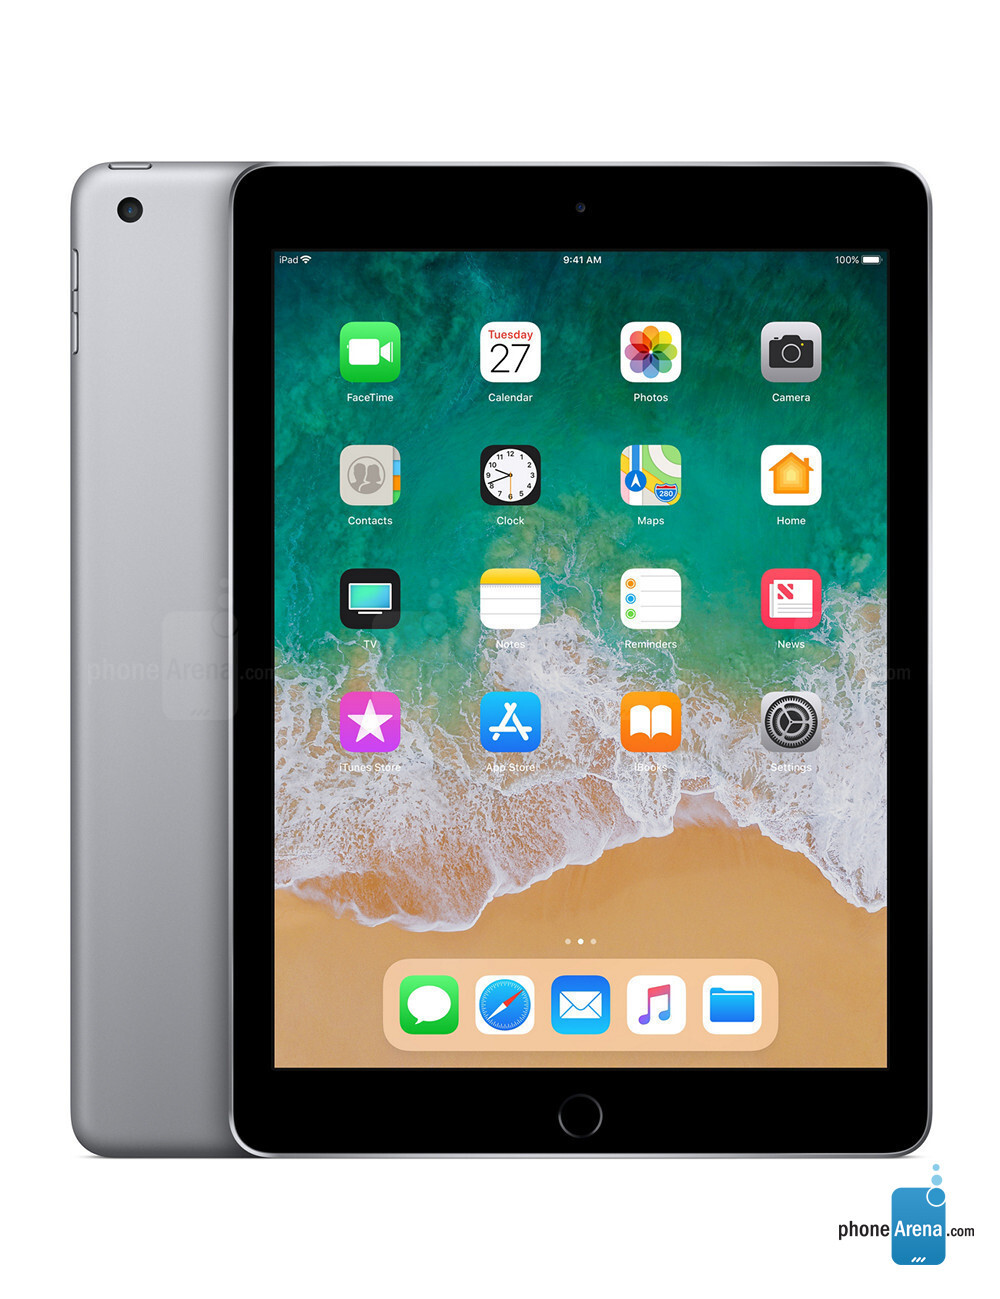 Apple iPad 9.7-inch (2018) specs